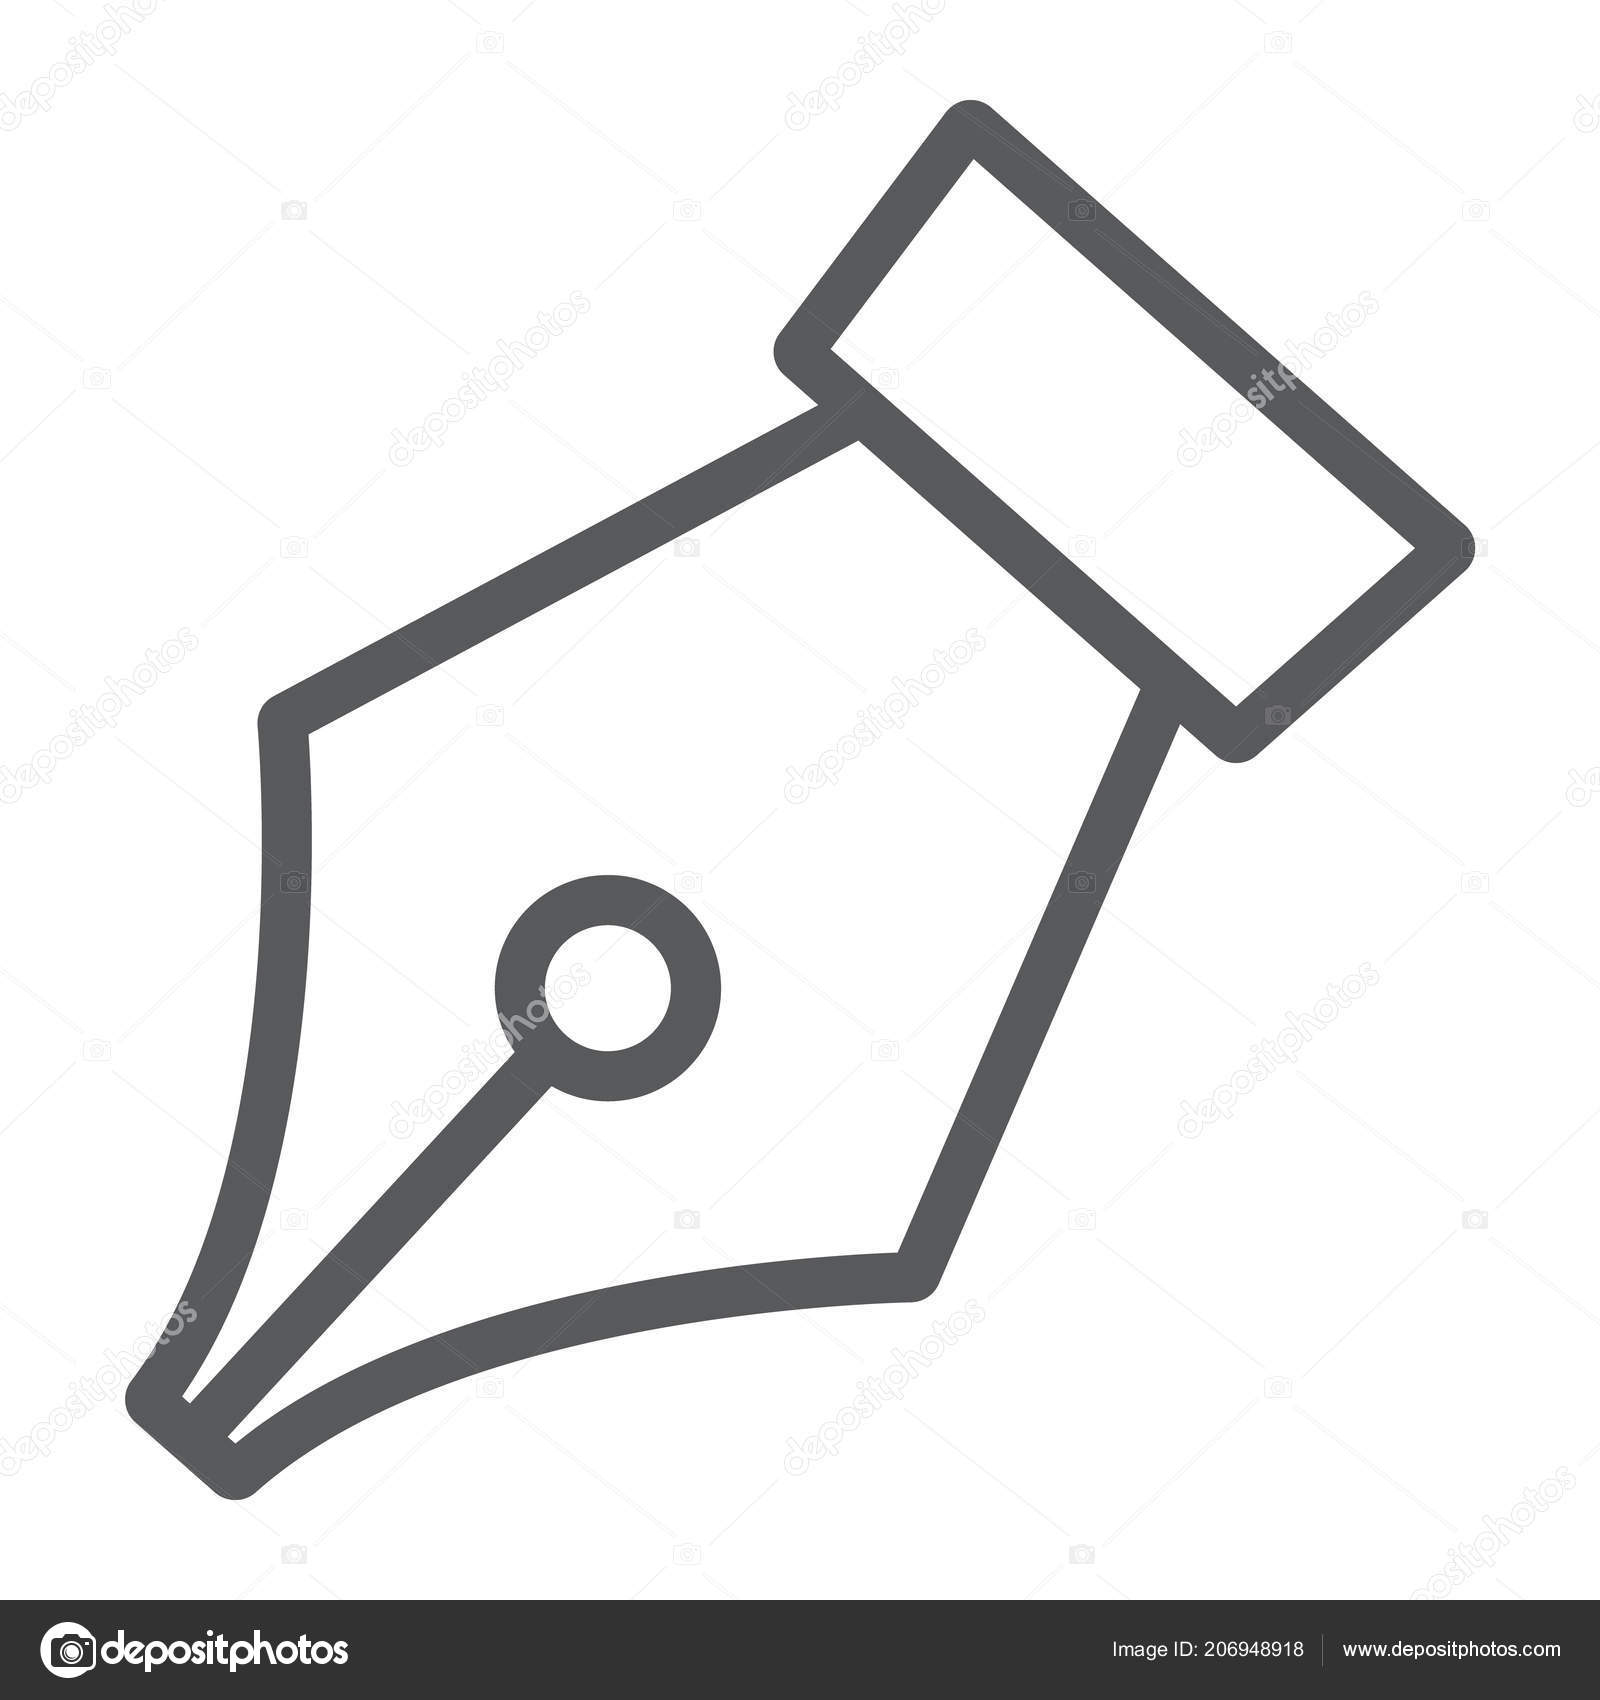 Pen tool line icon, tools and design, fountain pen sign